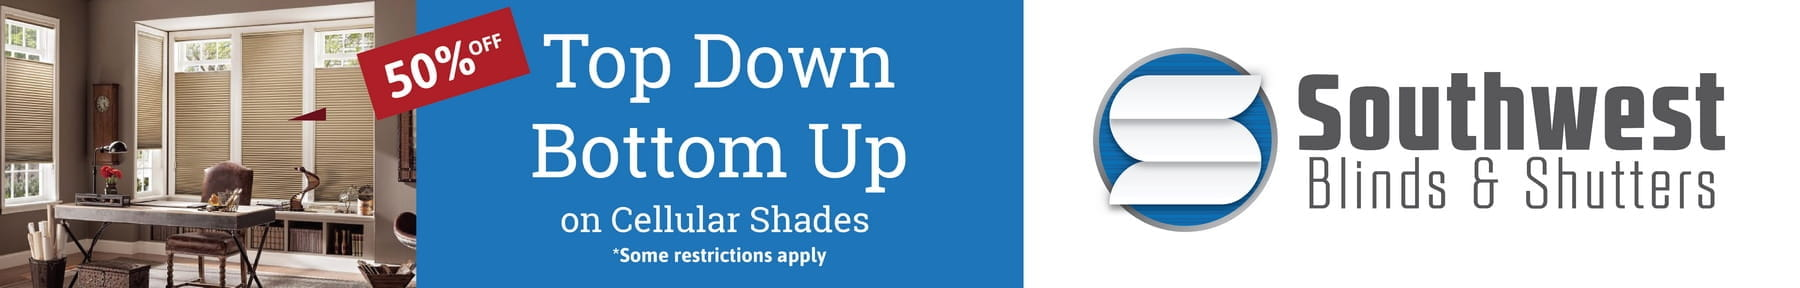 Southwest Blinds and Shutters offers you with Free Cordless Lift Upgrade on Cellular Shades